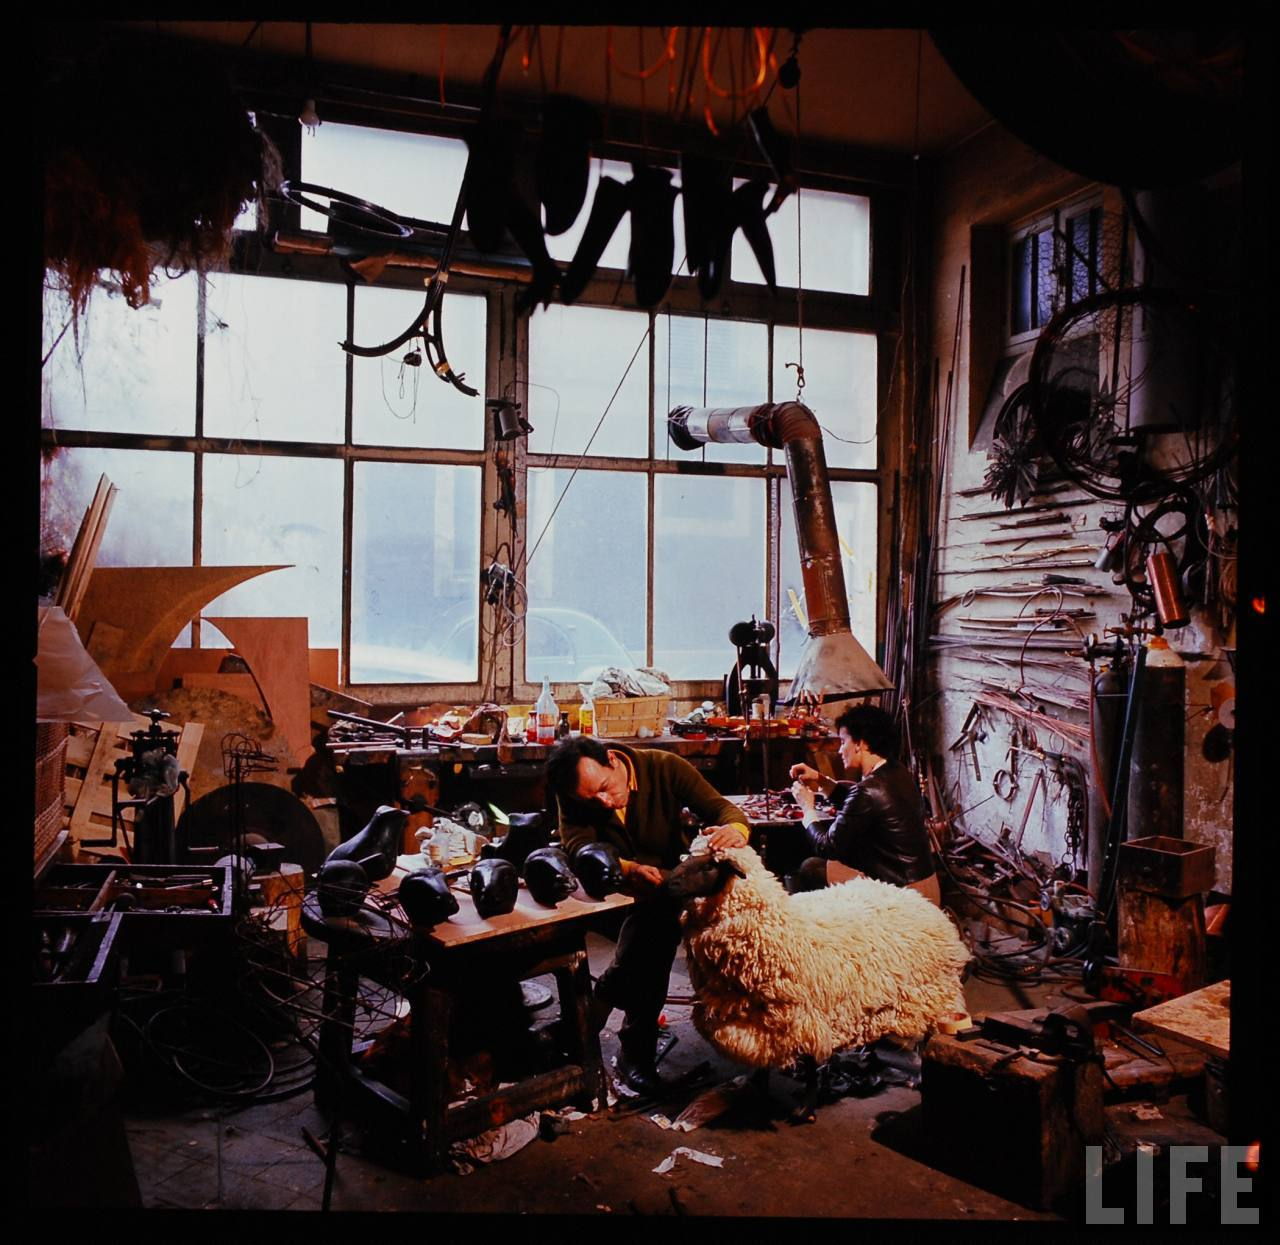 Husband and wife Francois-Xavier (F.X.) & Claude Lalanne at work in their Ury, France studio.